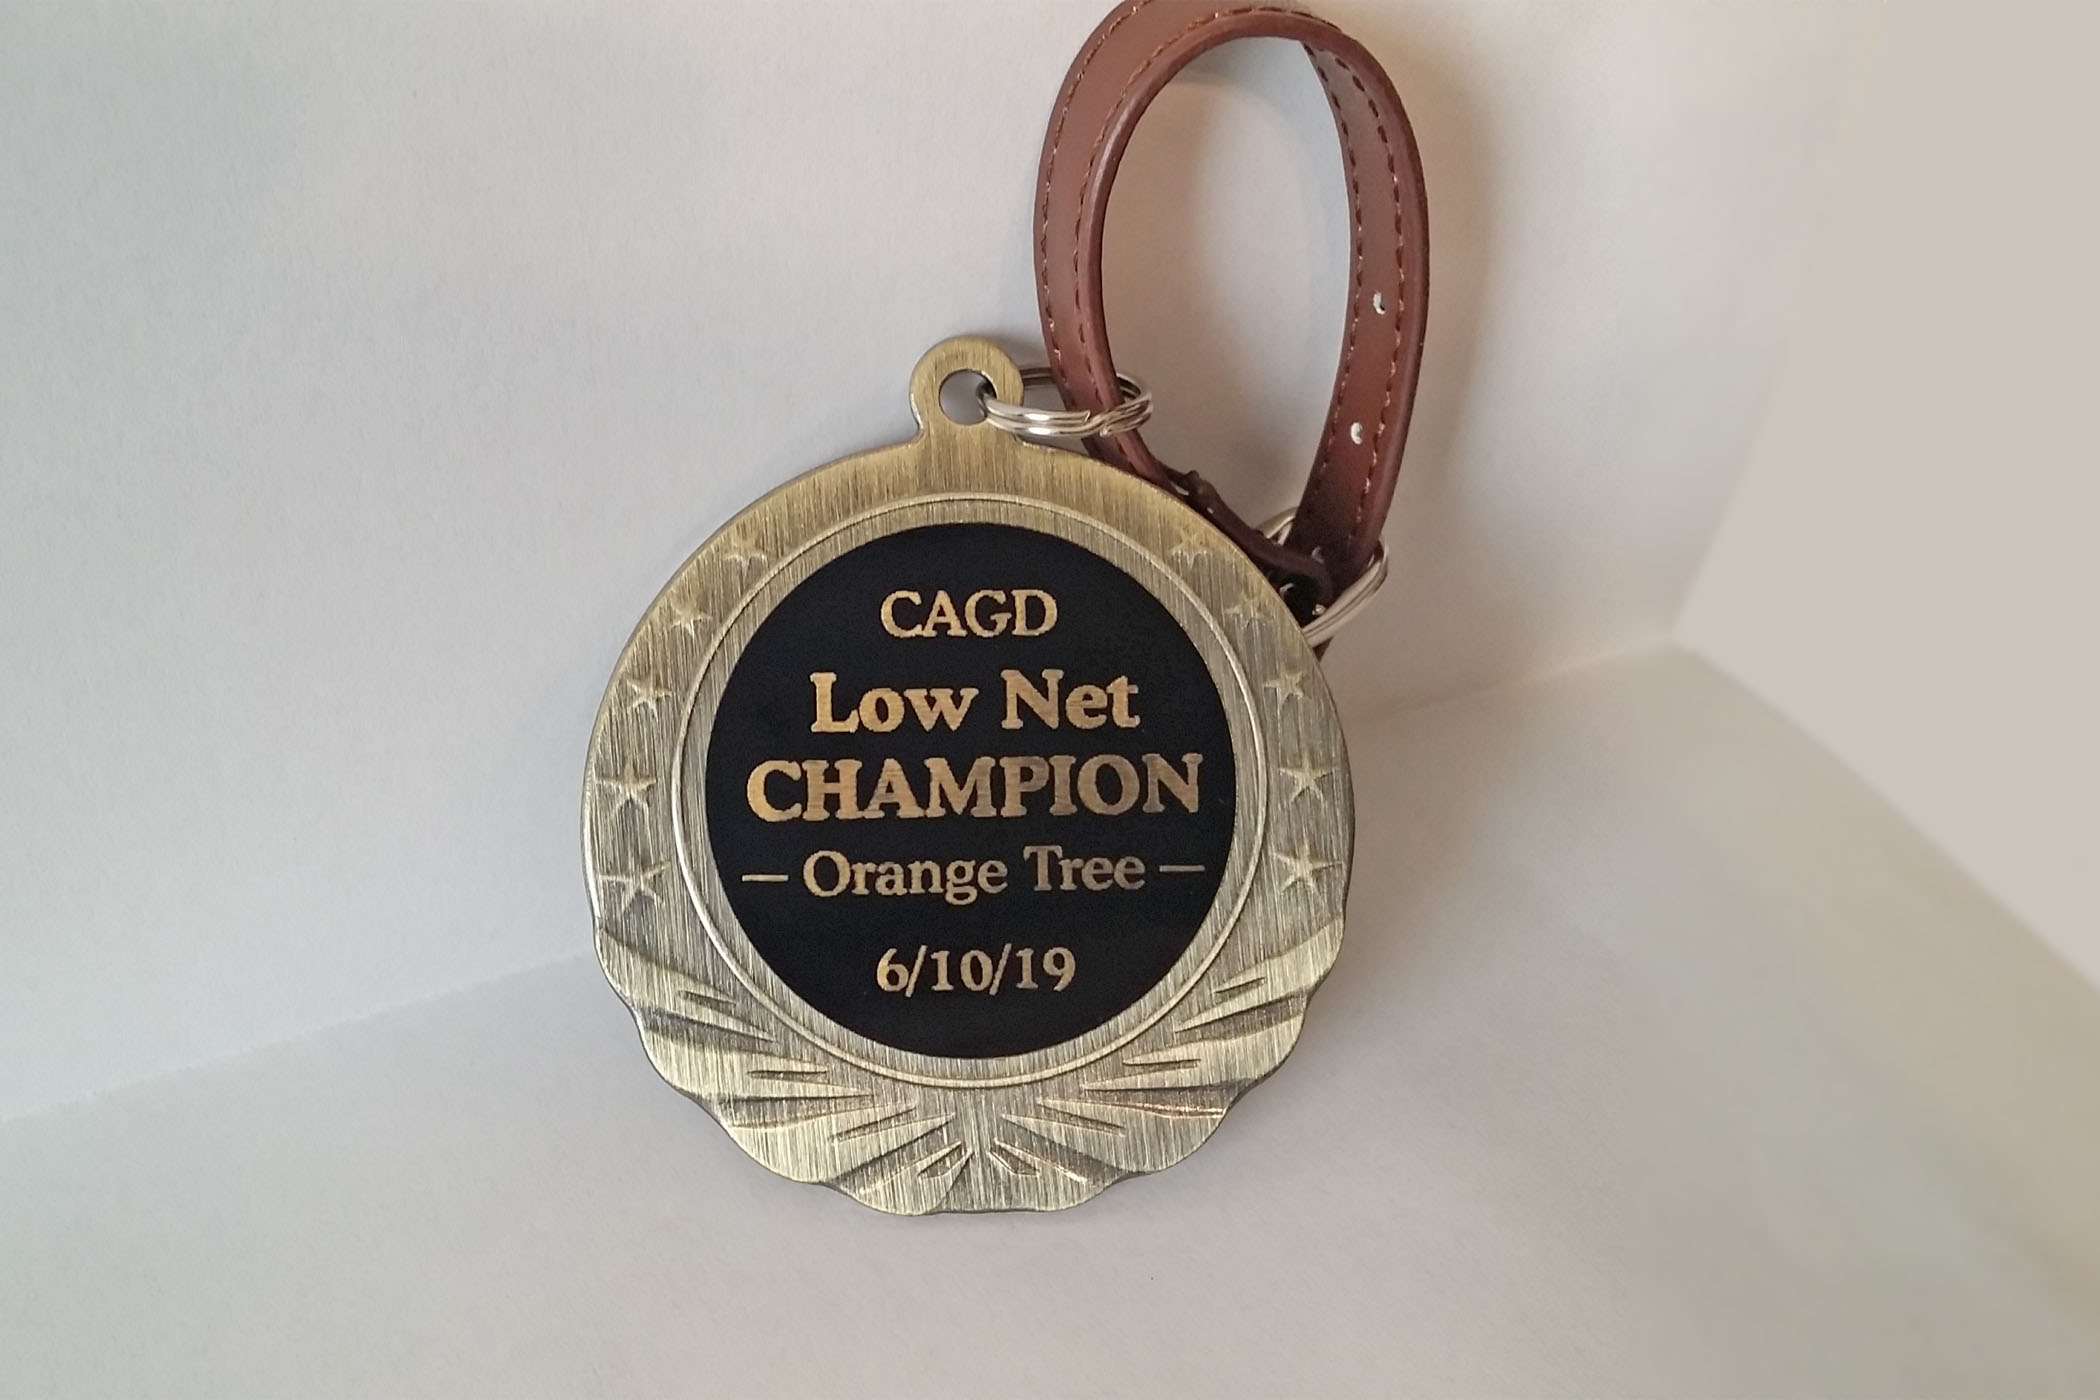 New Low Net Champion Award